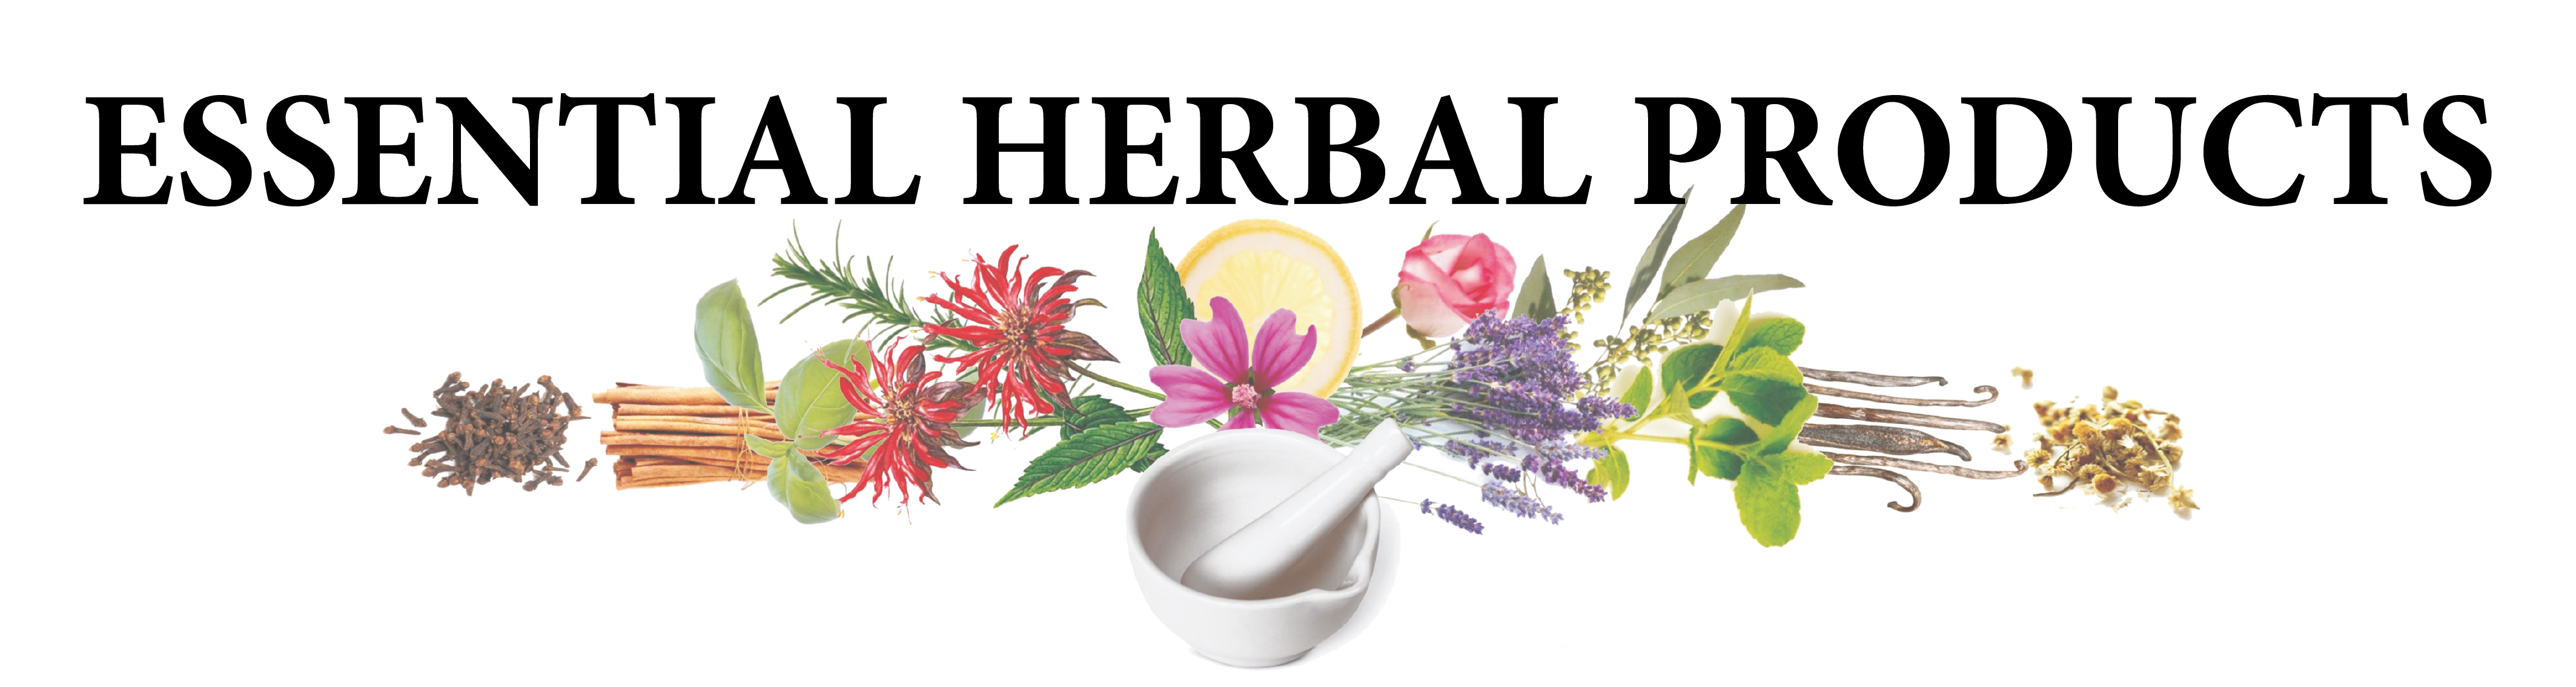 Essential Herbal Products Logo